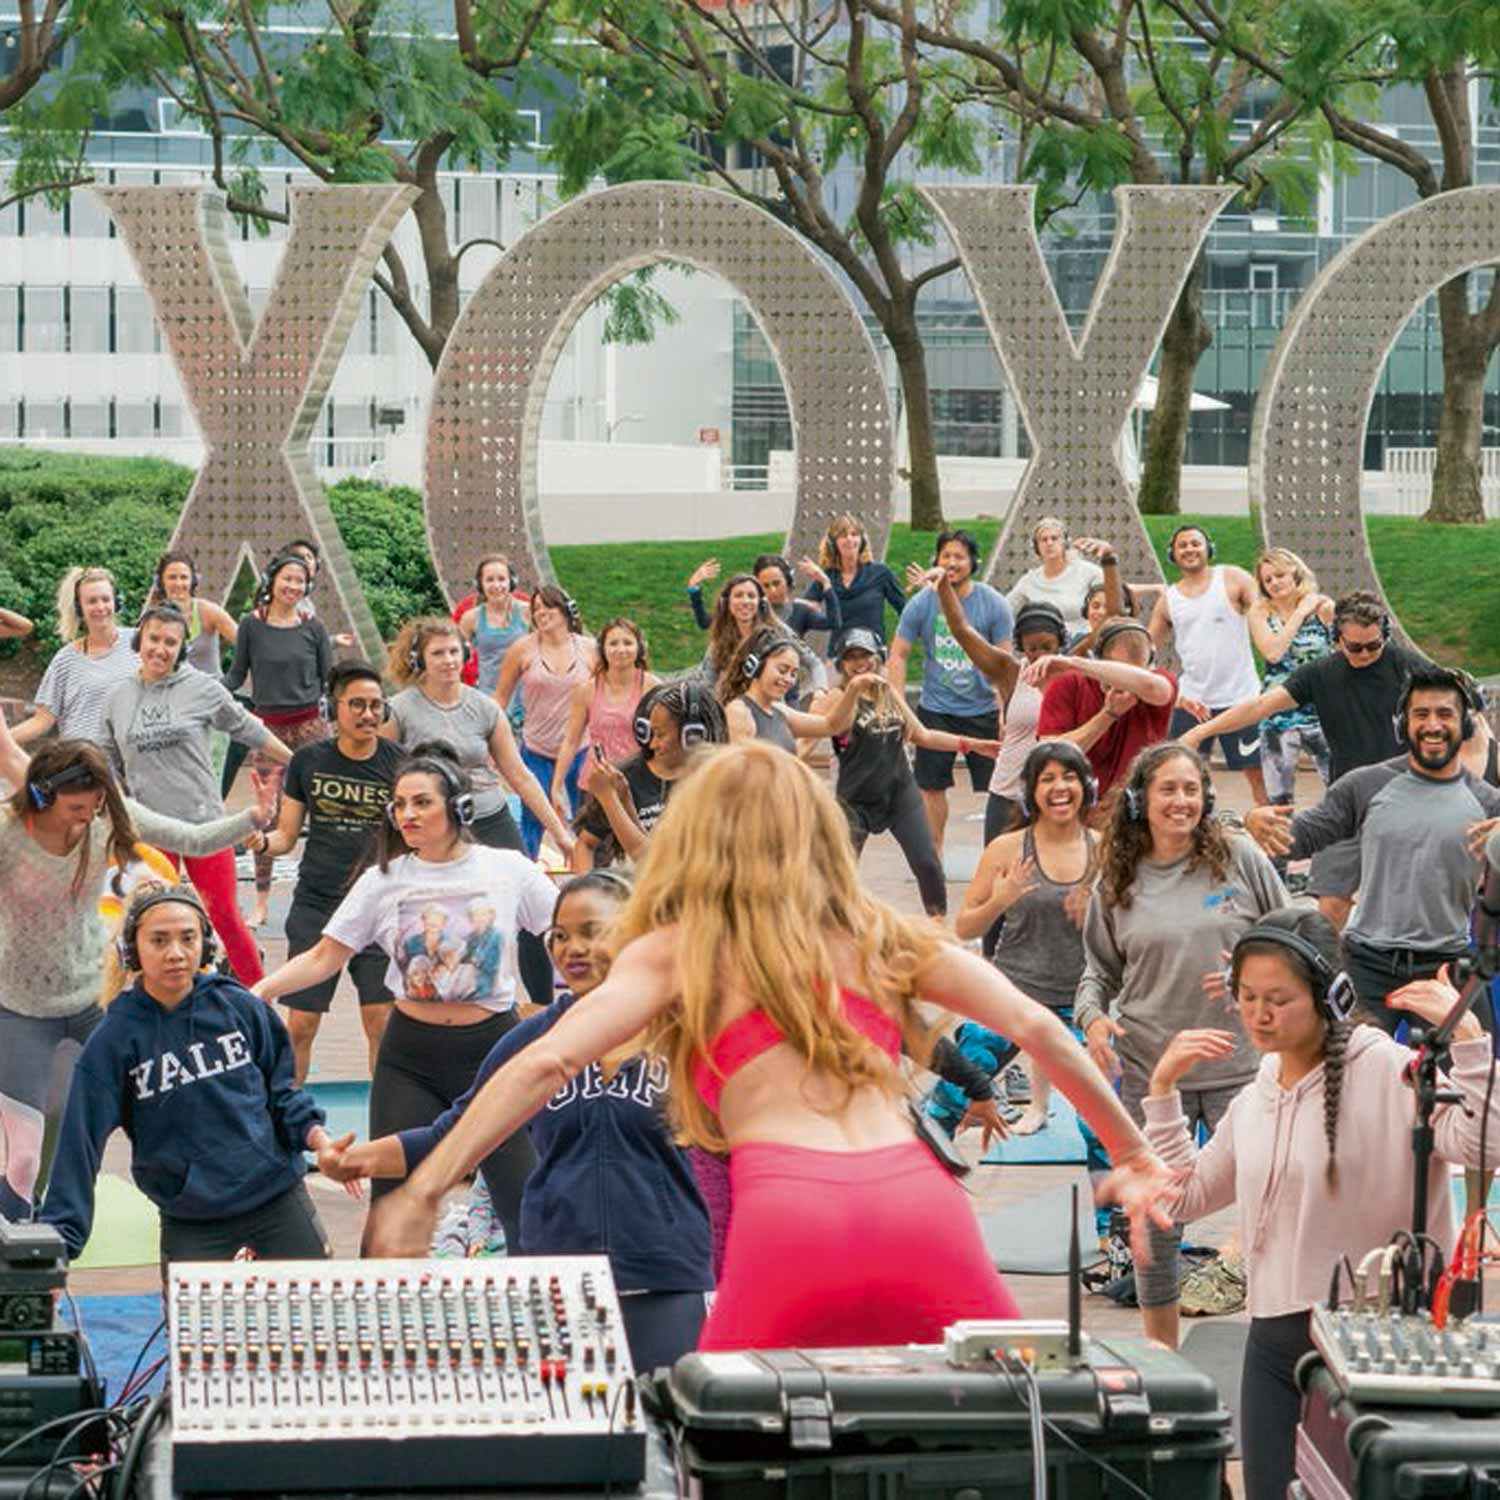 Image of Yoga Class in Front of Art Installation of Monumental Words